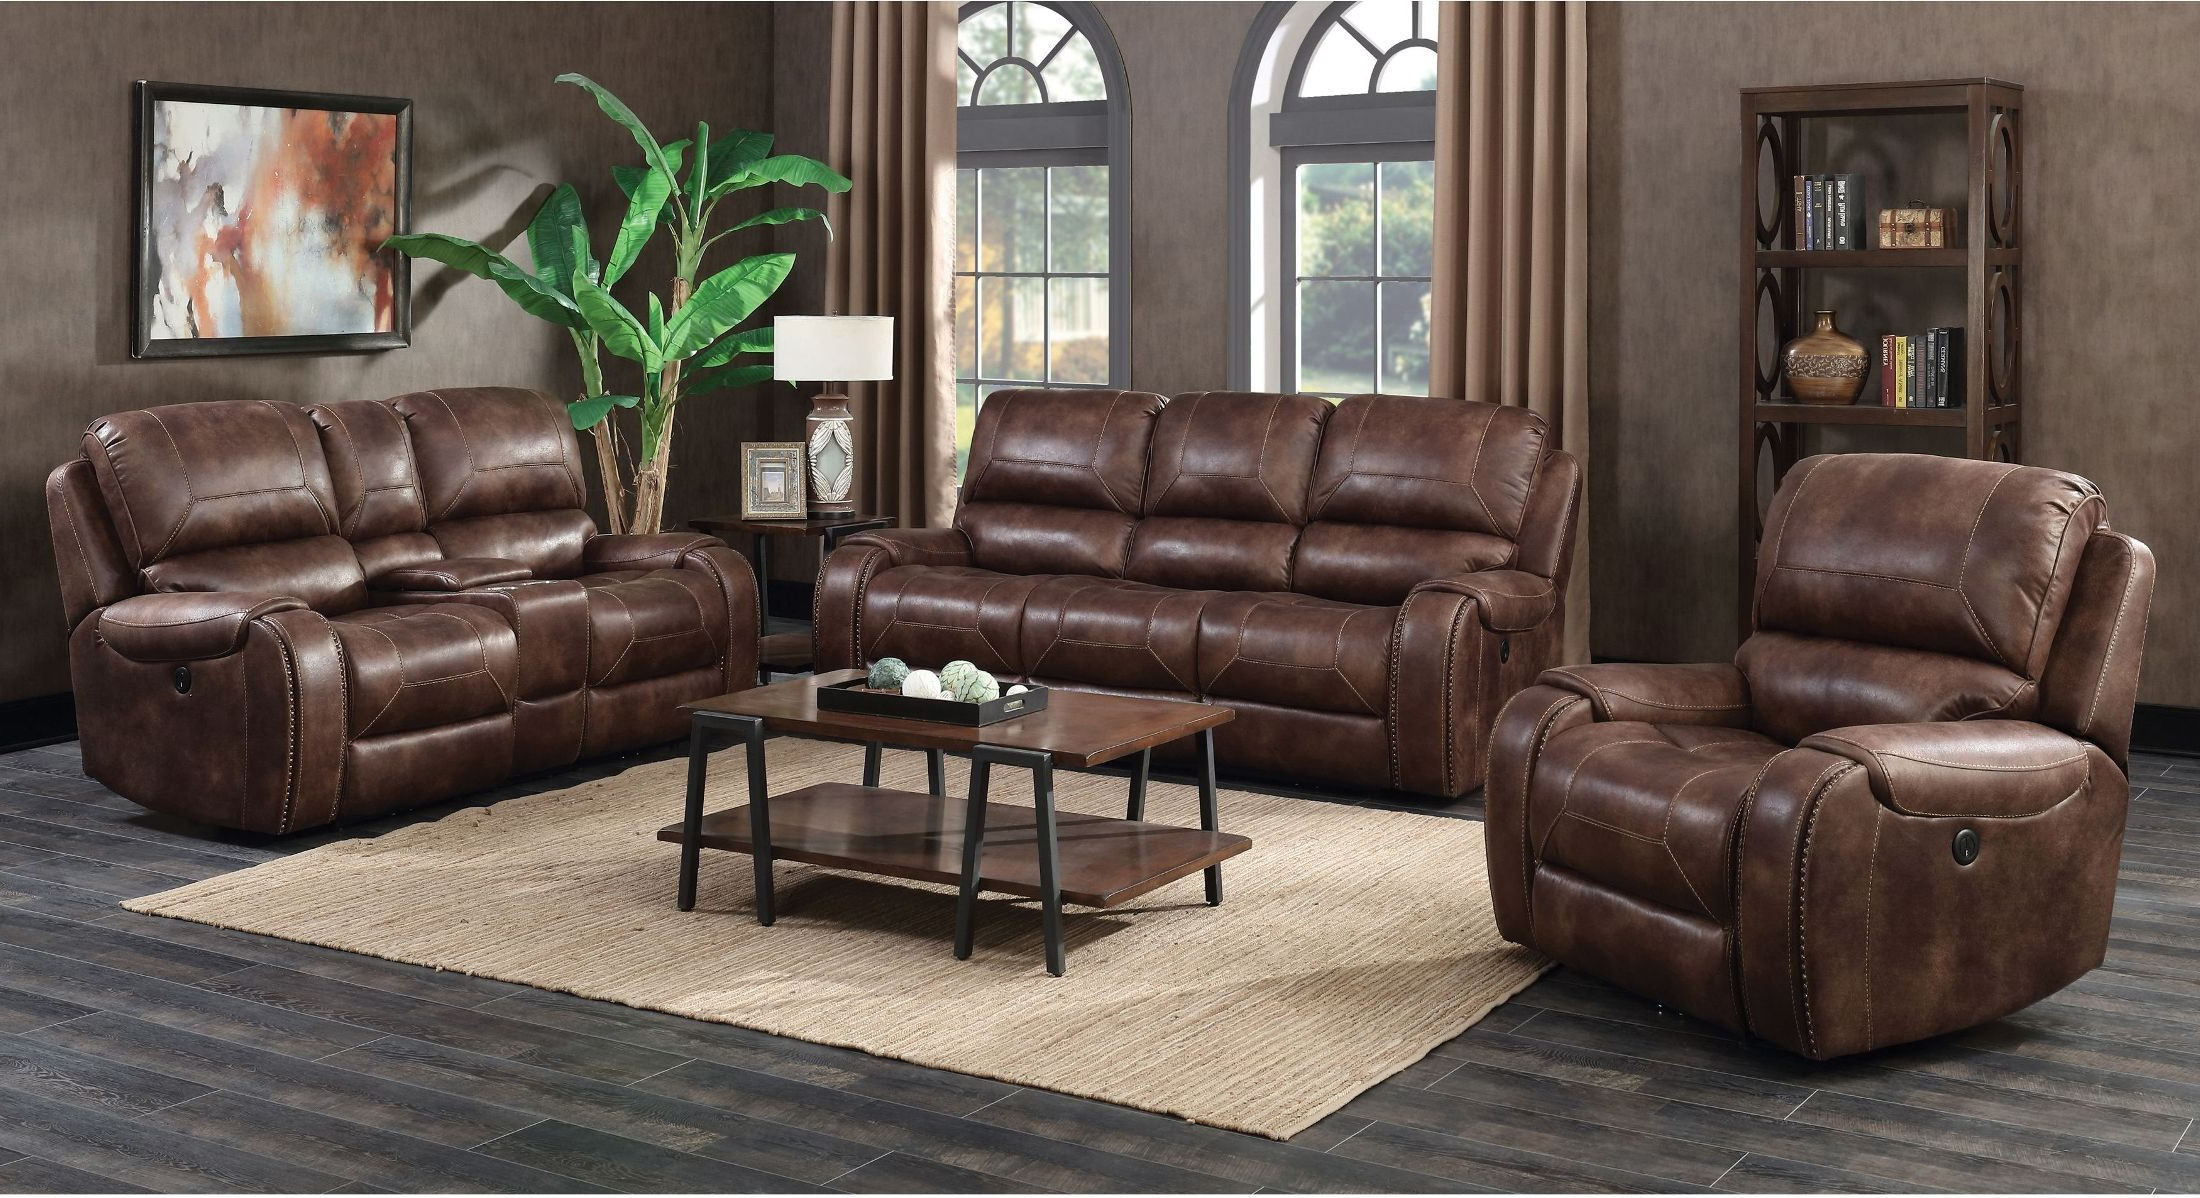 Waylon 3 Piece Power Reclining Sectionals For Preferred Jennings Waylon Mocha Power Reclining Living Room Set From Prime (View 17 of 20)